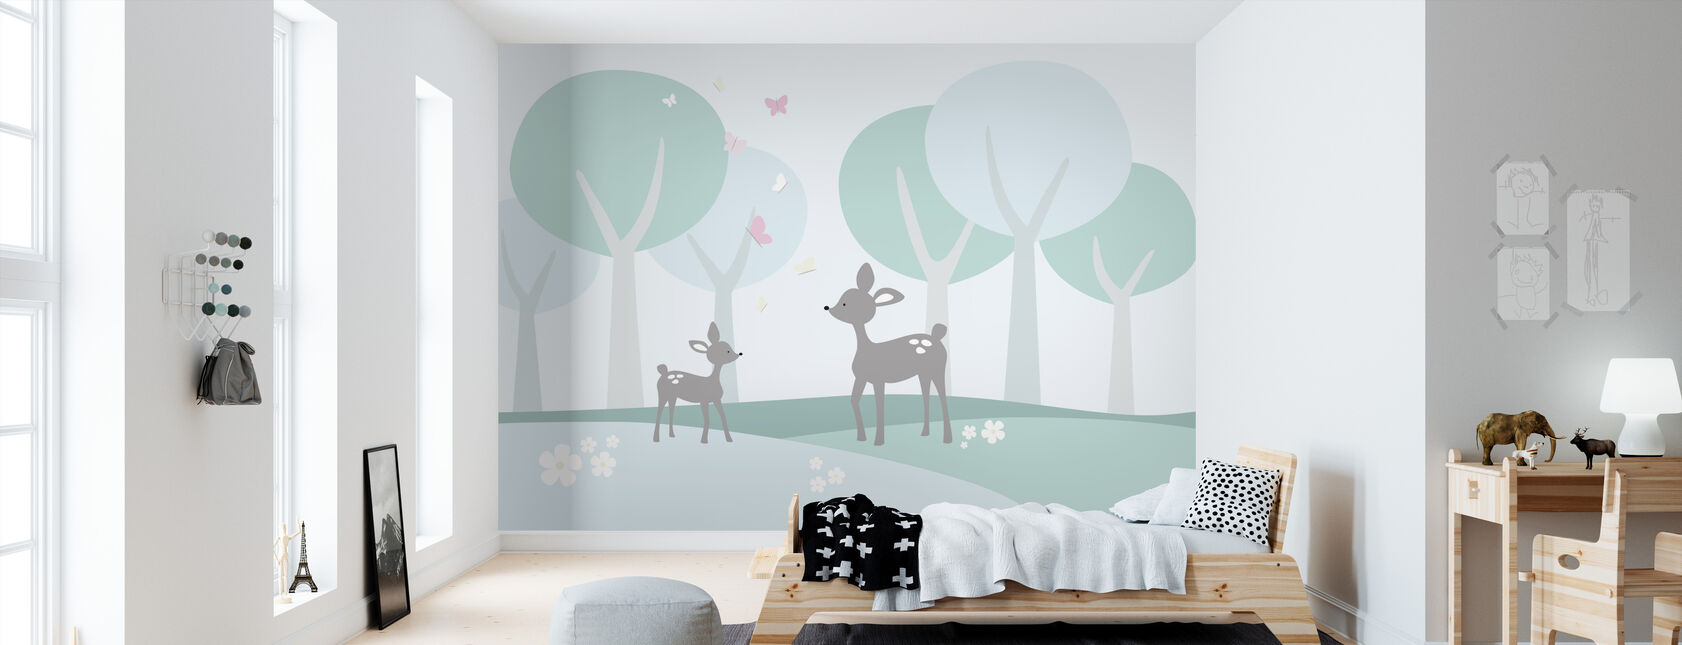 Herten in Woods - Behang - Kinderkamer